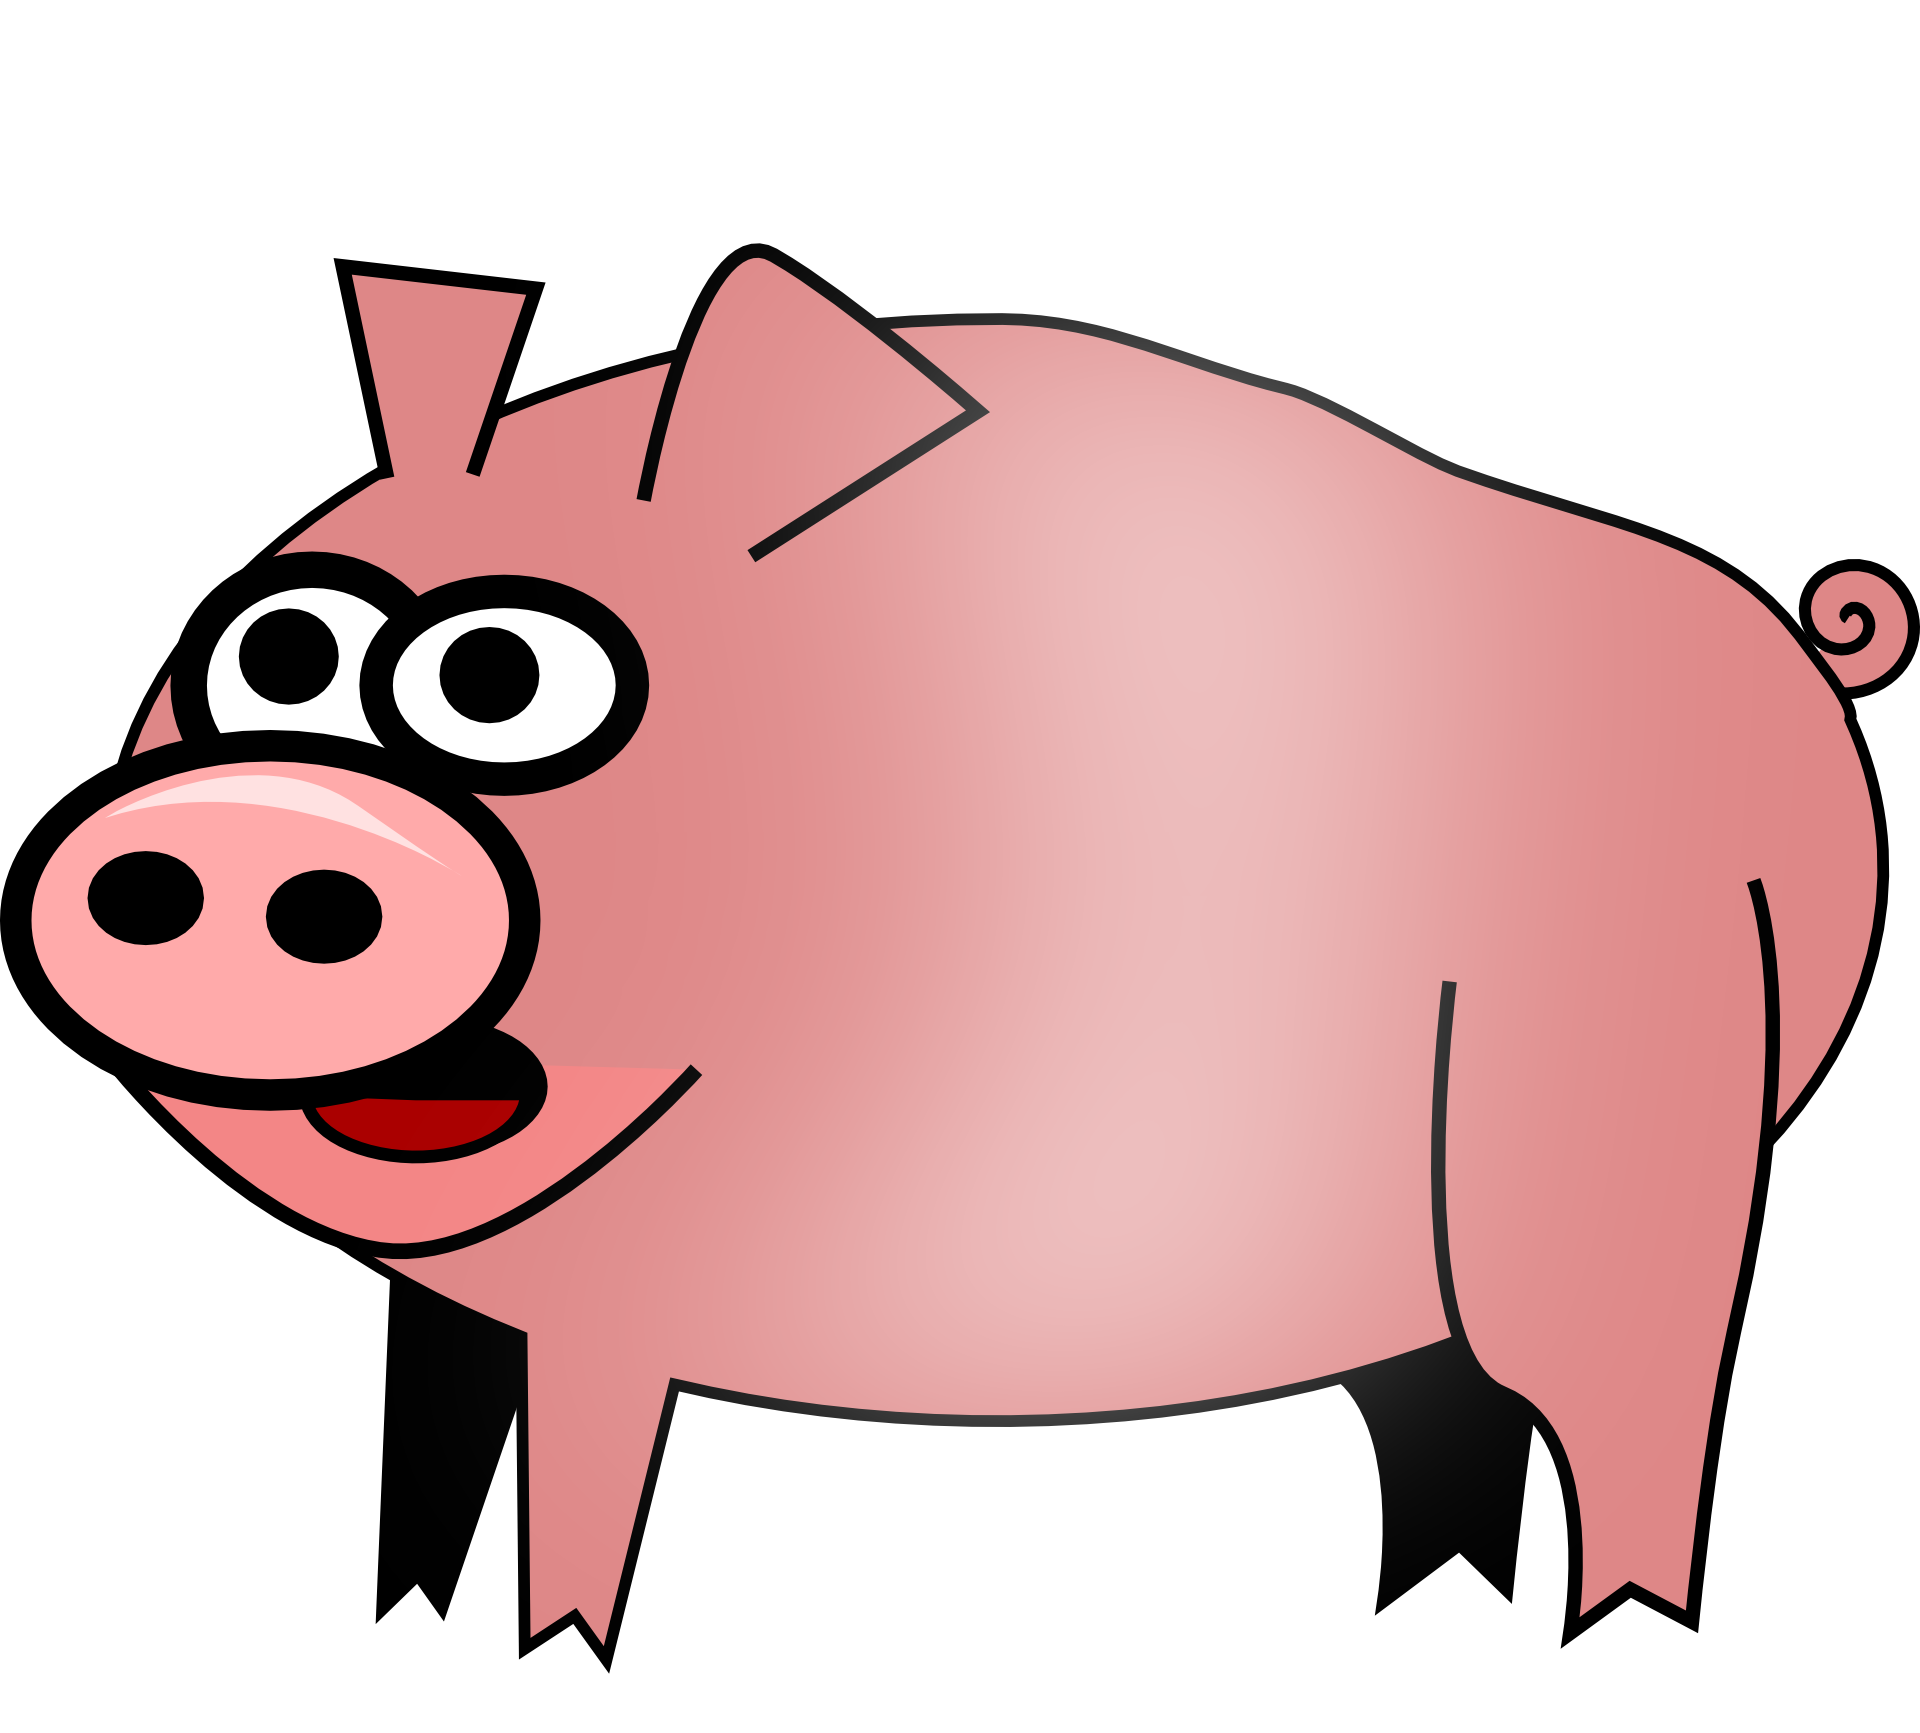 Pink farm pig clipart free image.